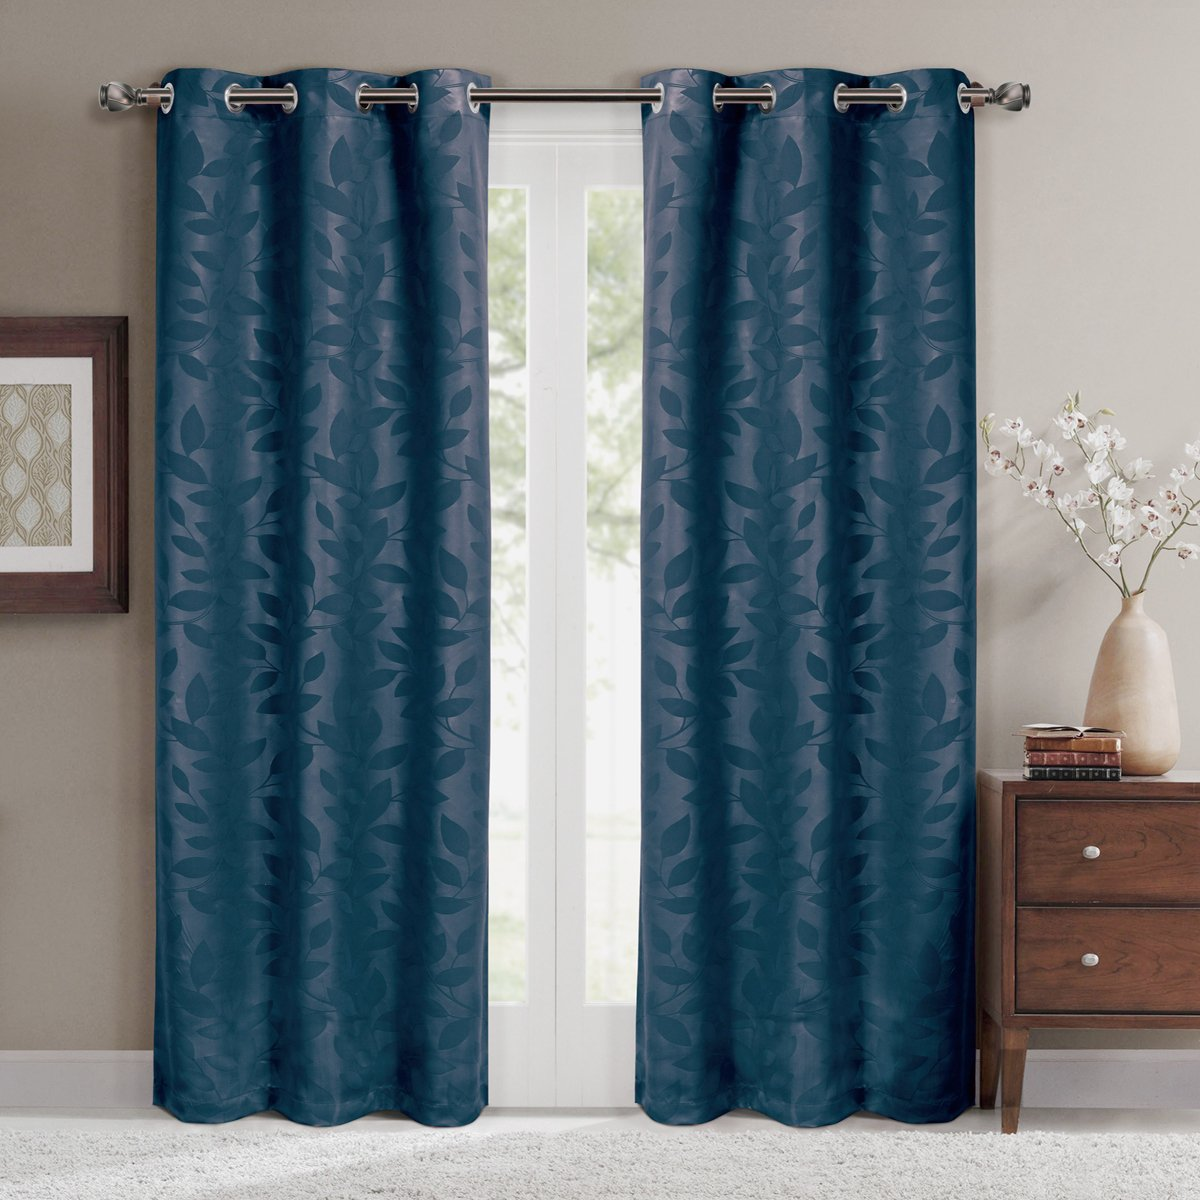 Virginia Navy Grommet Blackout Weave Embossed Window Curtain Panels, Pair / Set of 2 Panels, 37x84 inches Each, by Royal Hotel